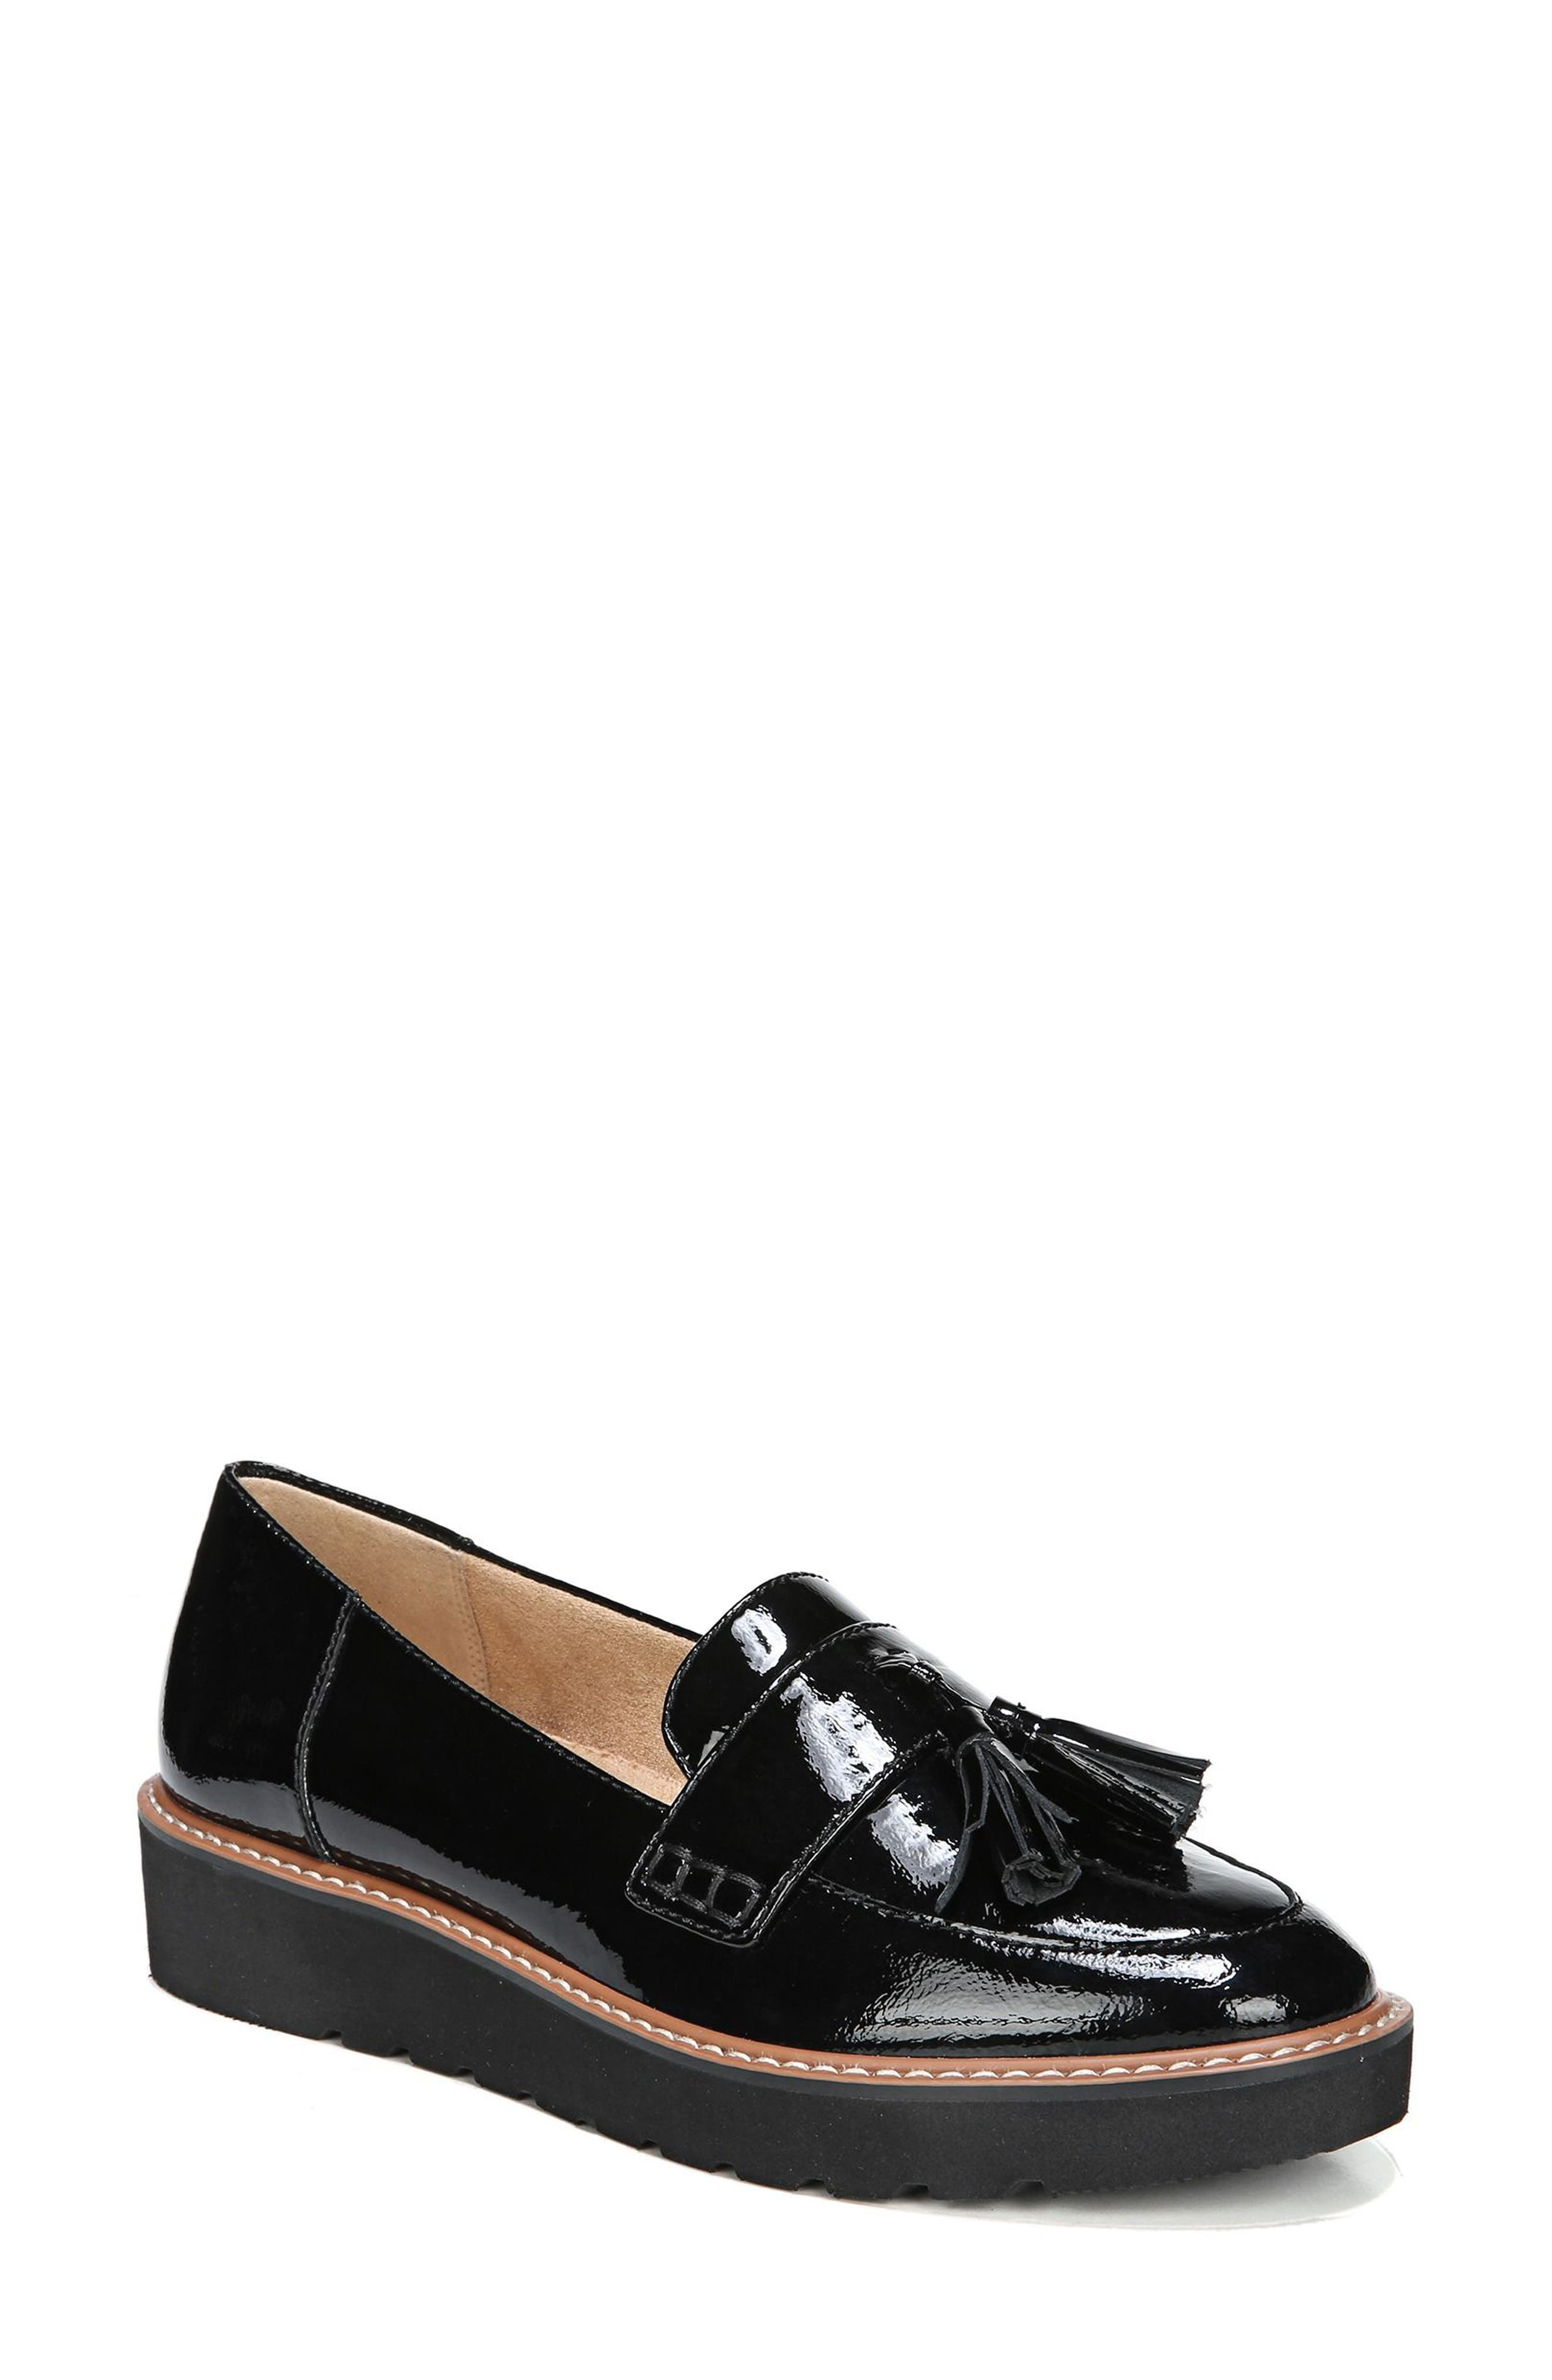 NATURALIZER, August Loafer, Main thumbnail 1, color, 002